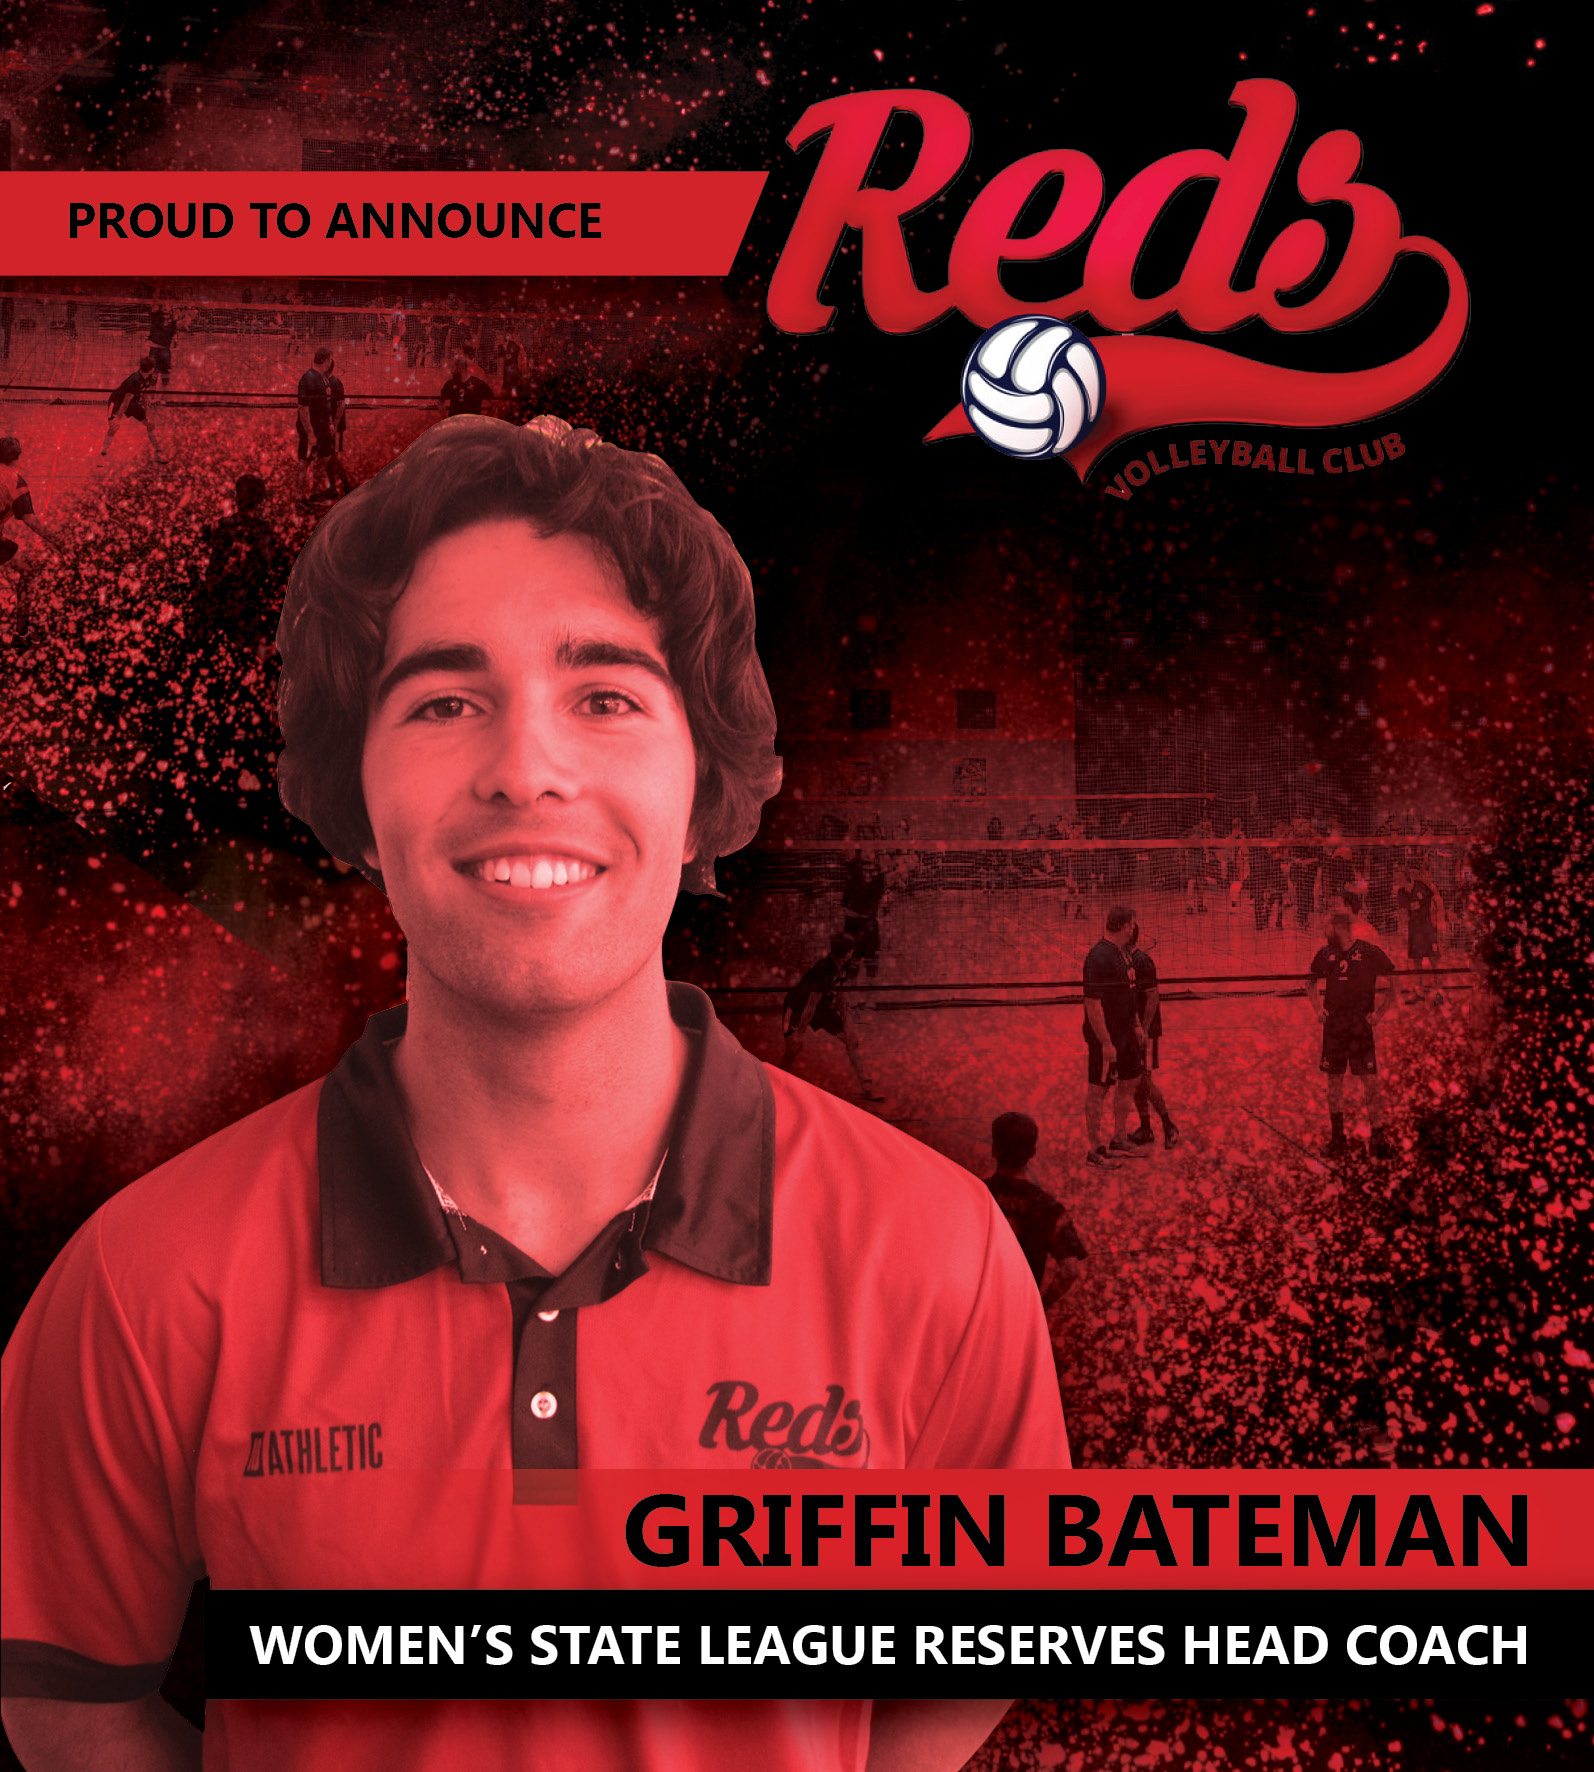 Griffin Bateman - Women's State League Reserves Head Coach